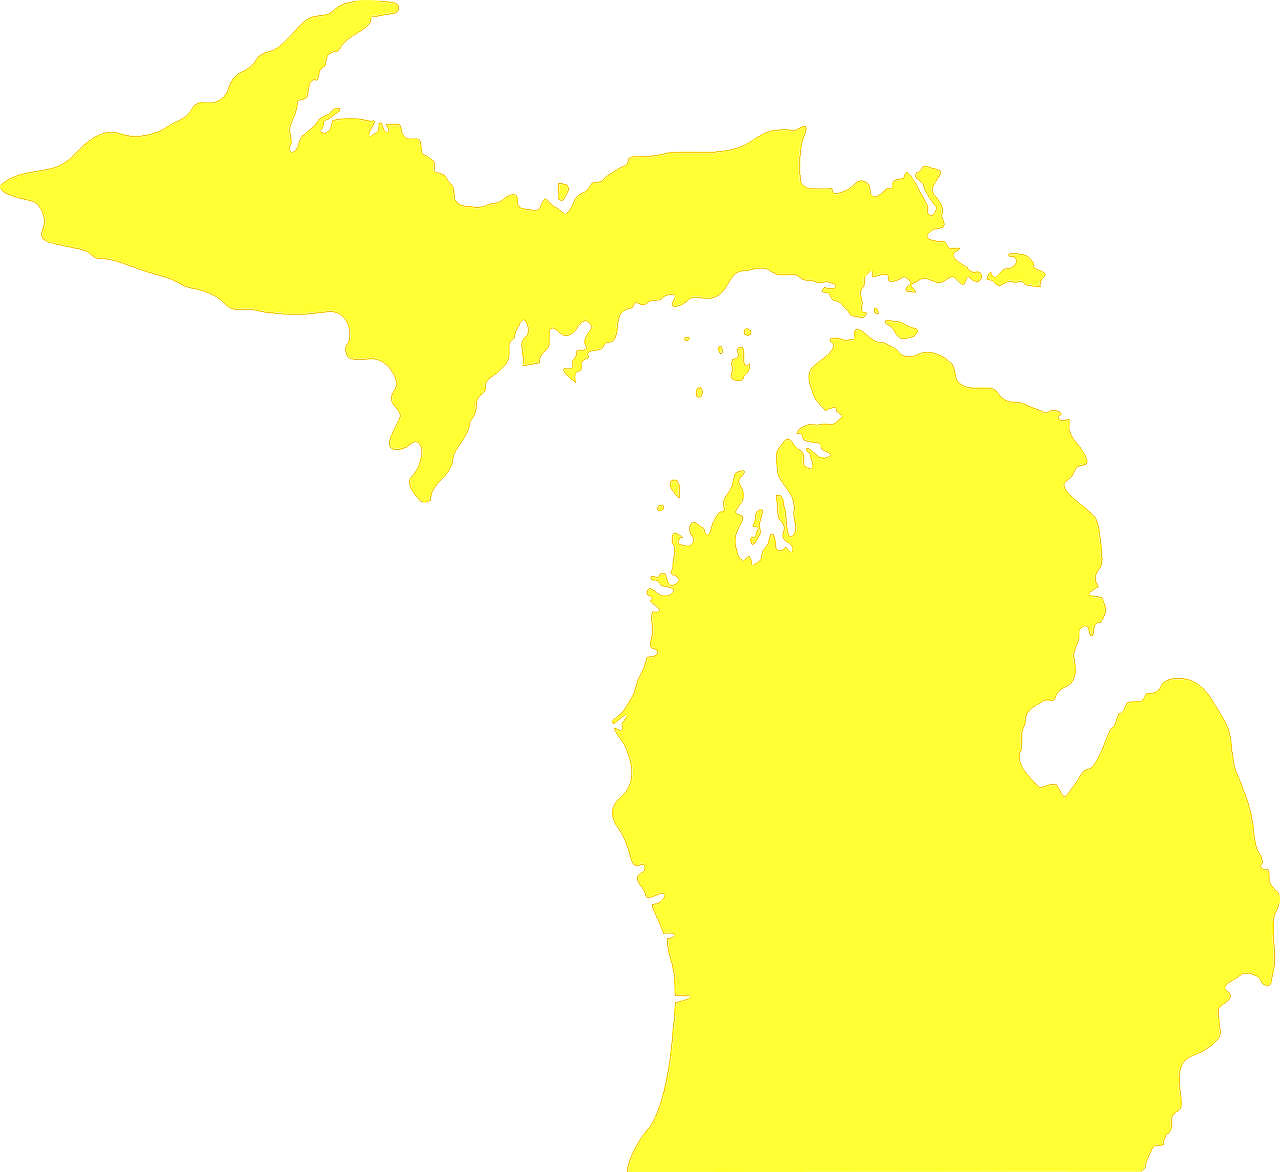 michigan-23565_1280.png